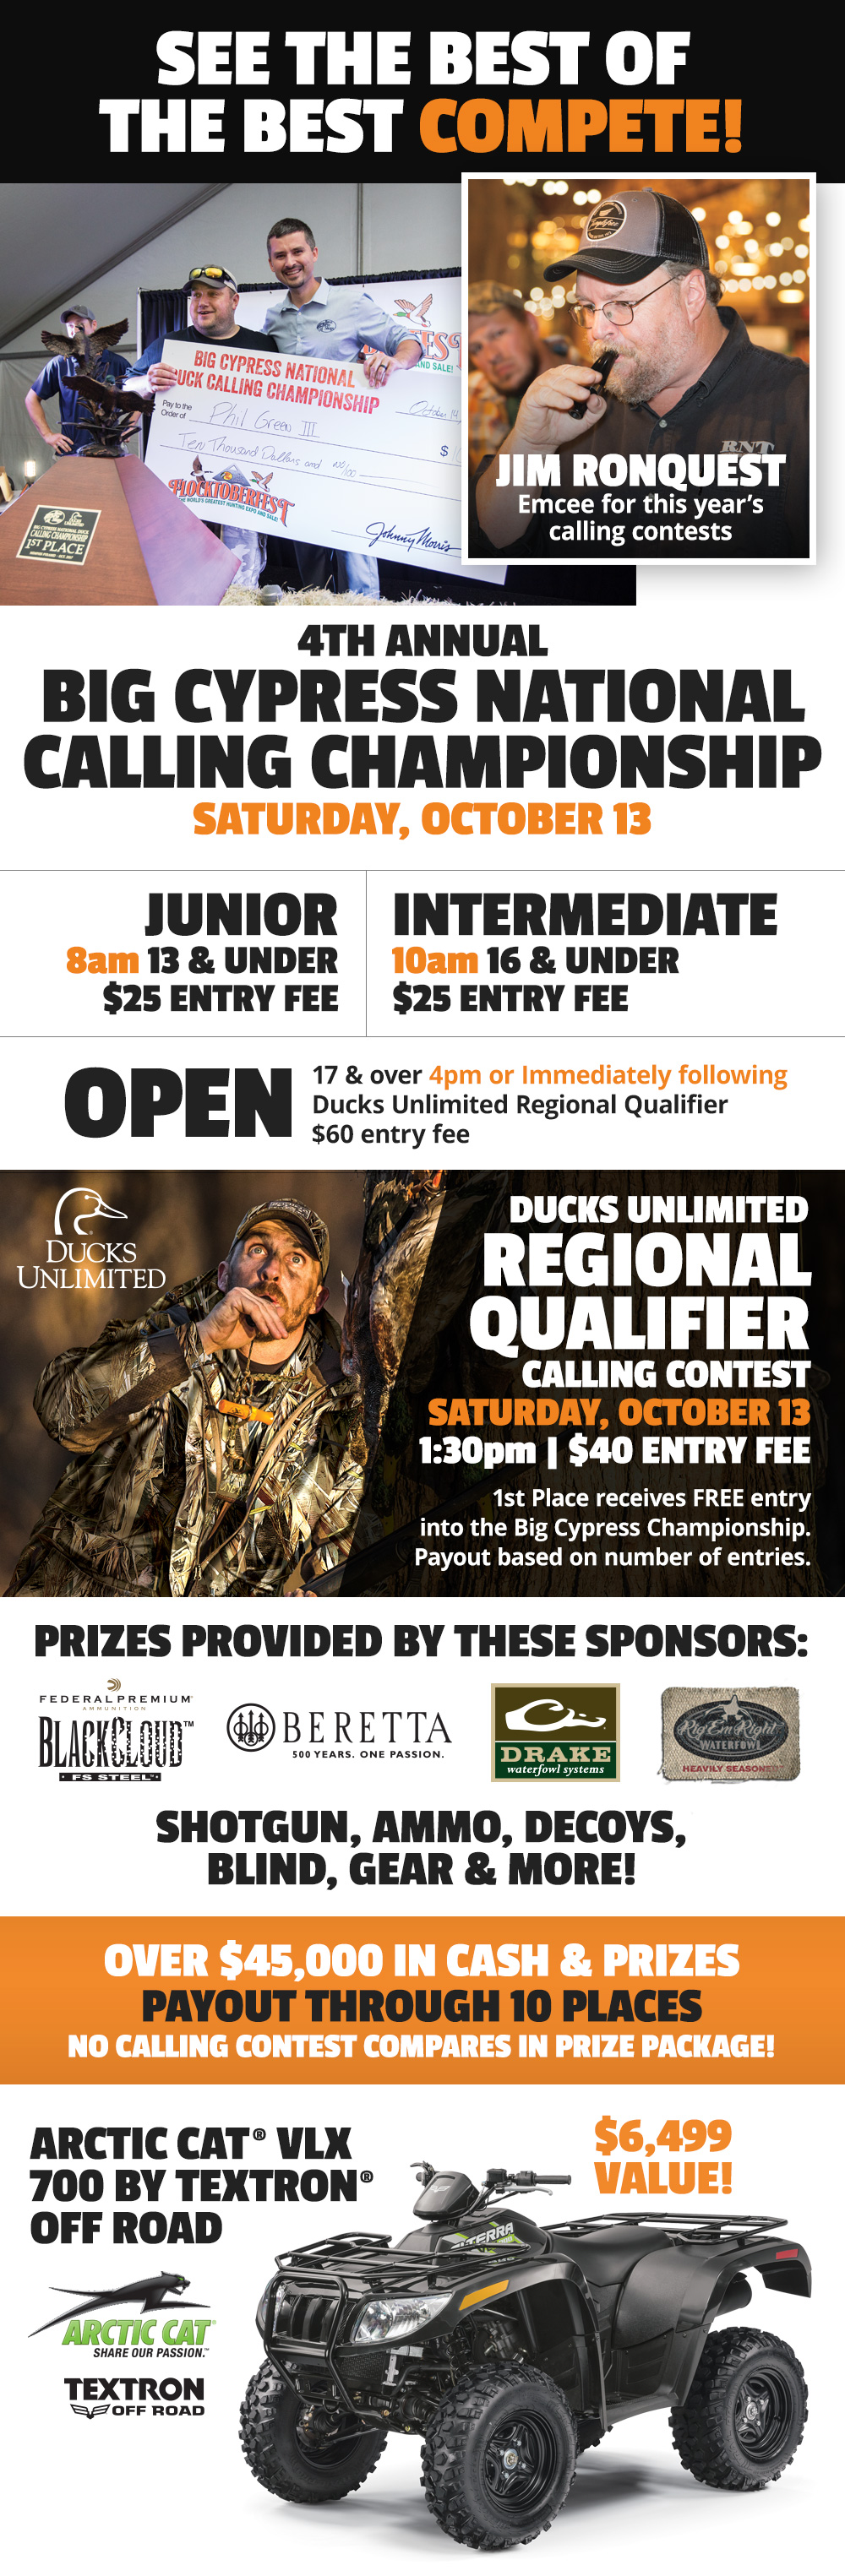 2 Big Duck-Calling Competitions - Saturday, October 13